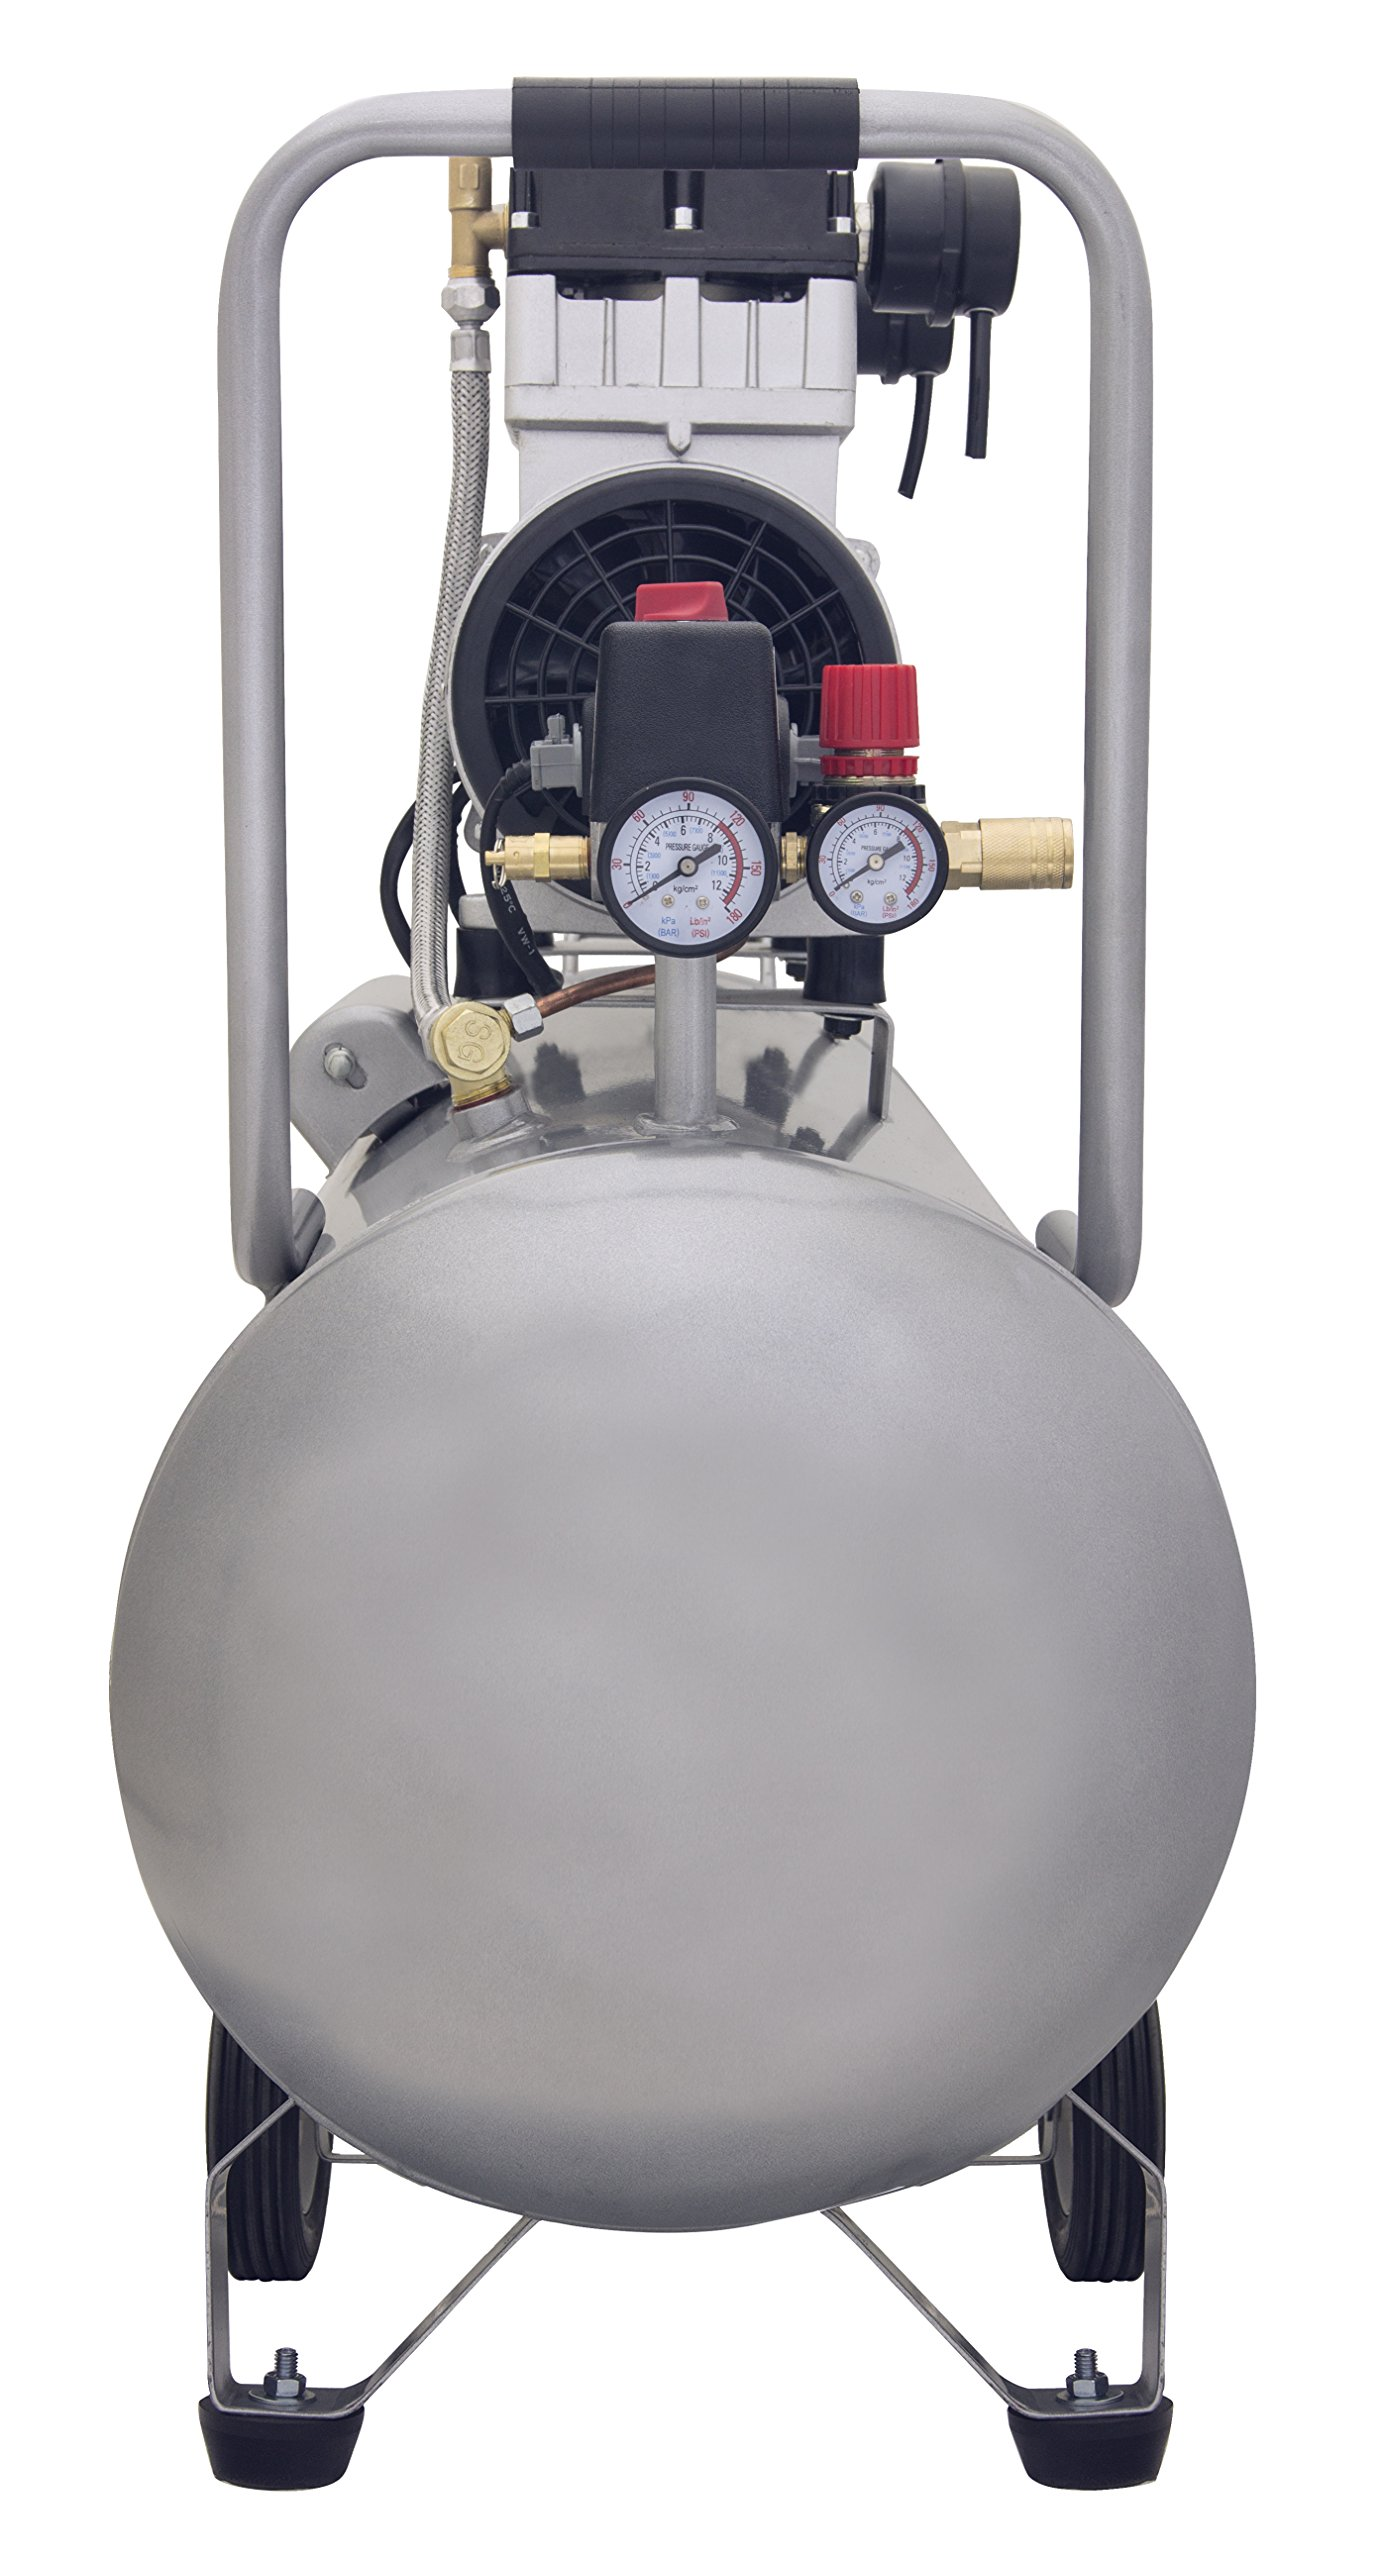 California Air Tools 15020C Ultra Quiet and Oil-Free 2.0 HP 15.0-Gallon Steel Tank Air Compressor by California Air Tools (Image #3)